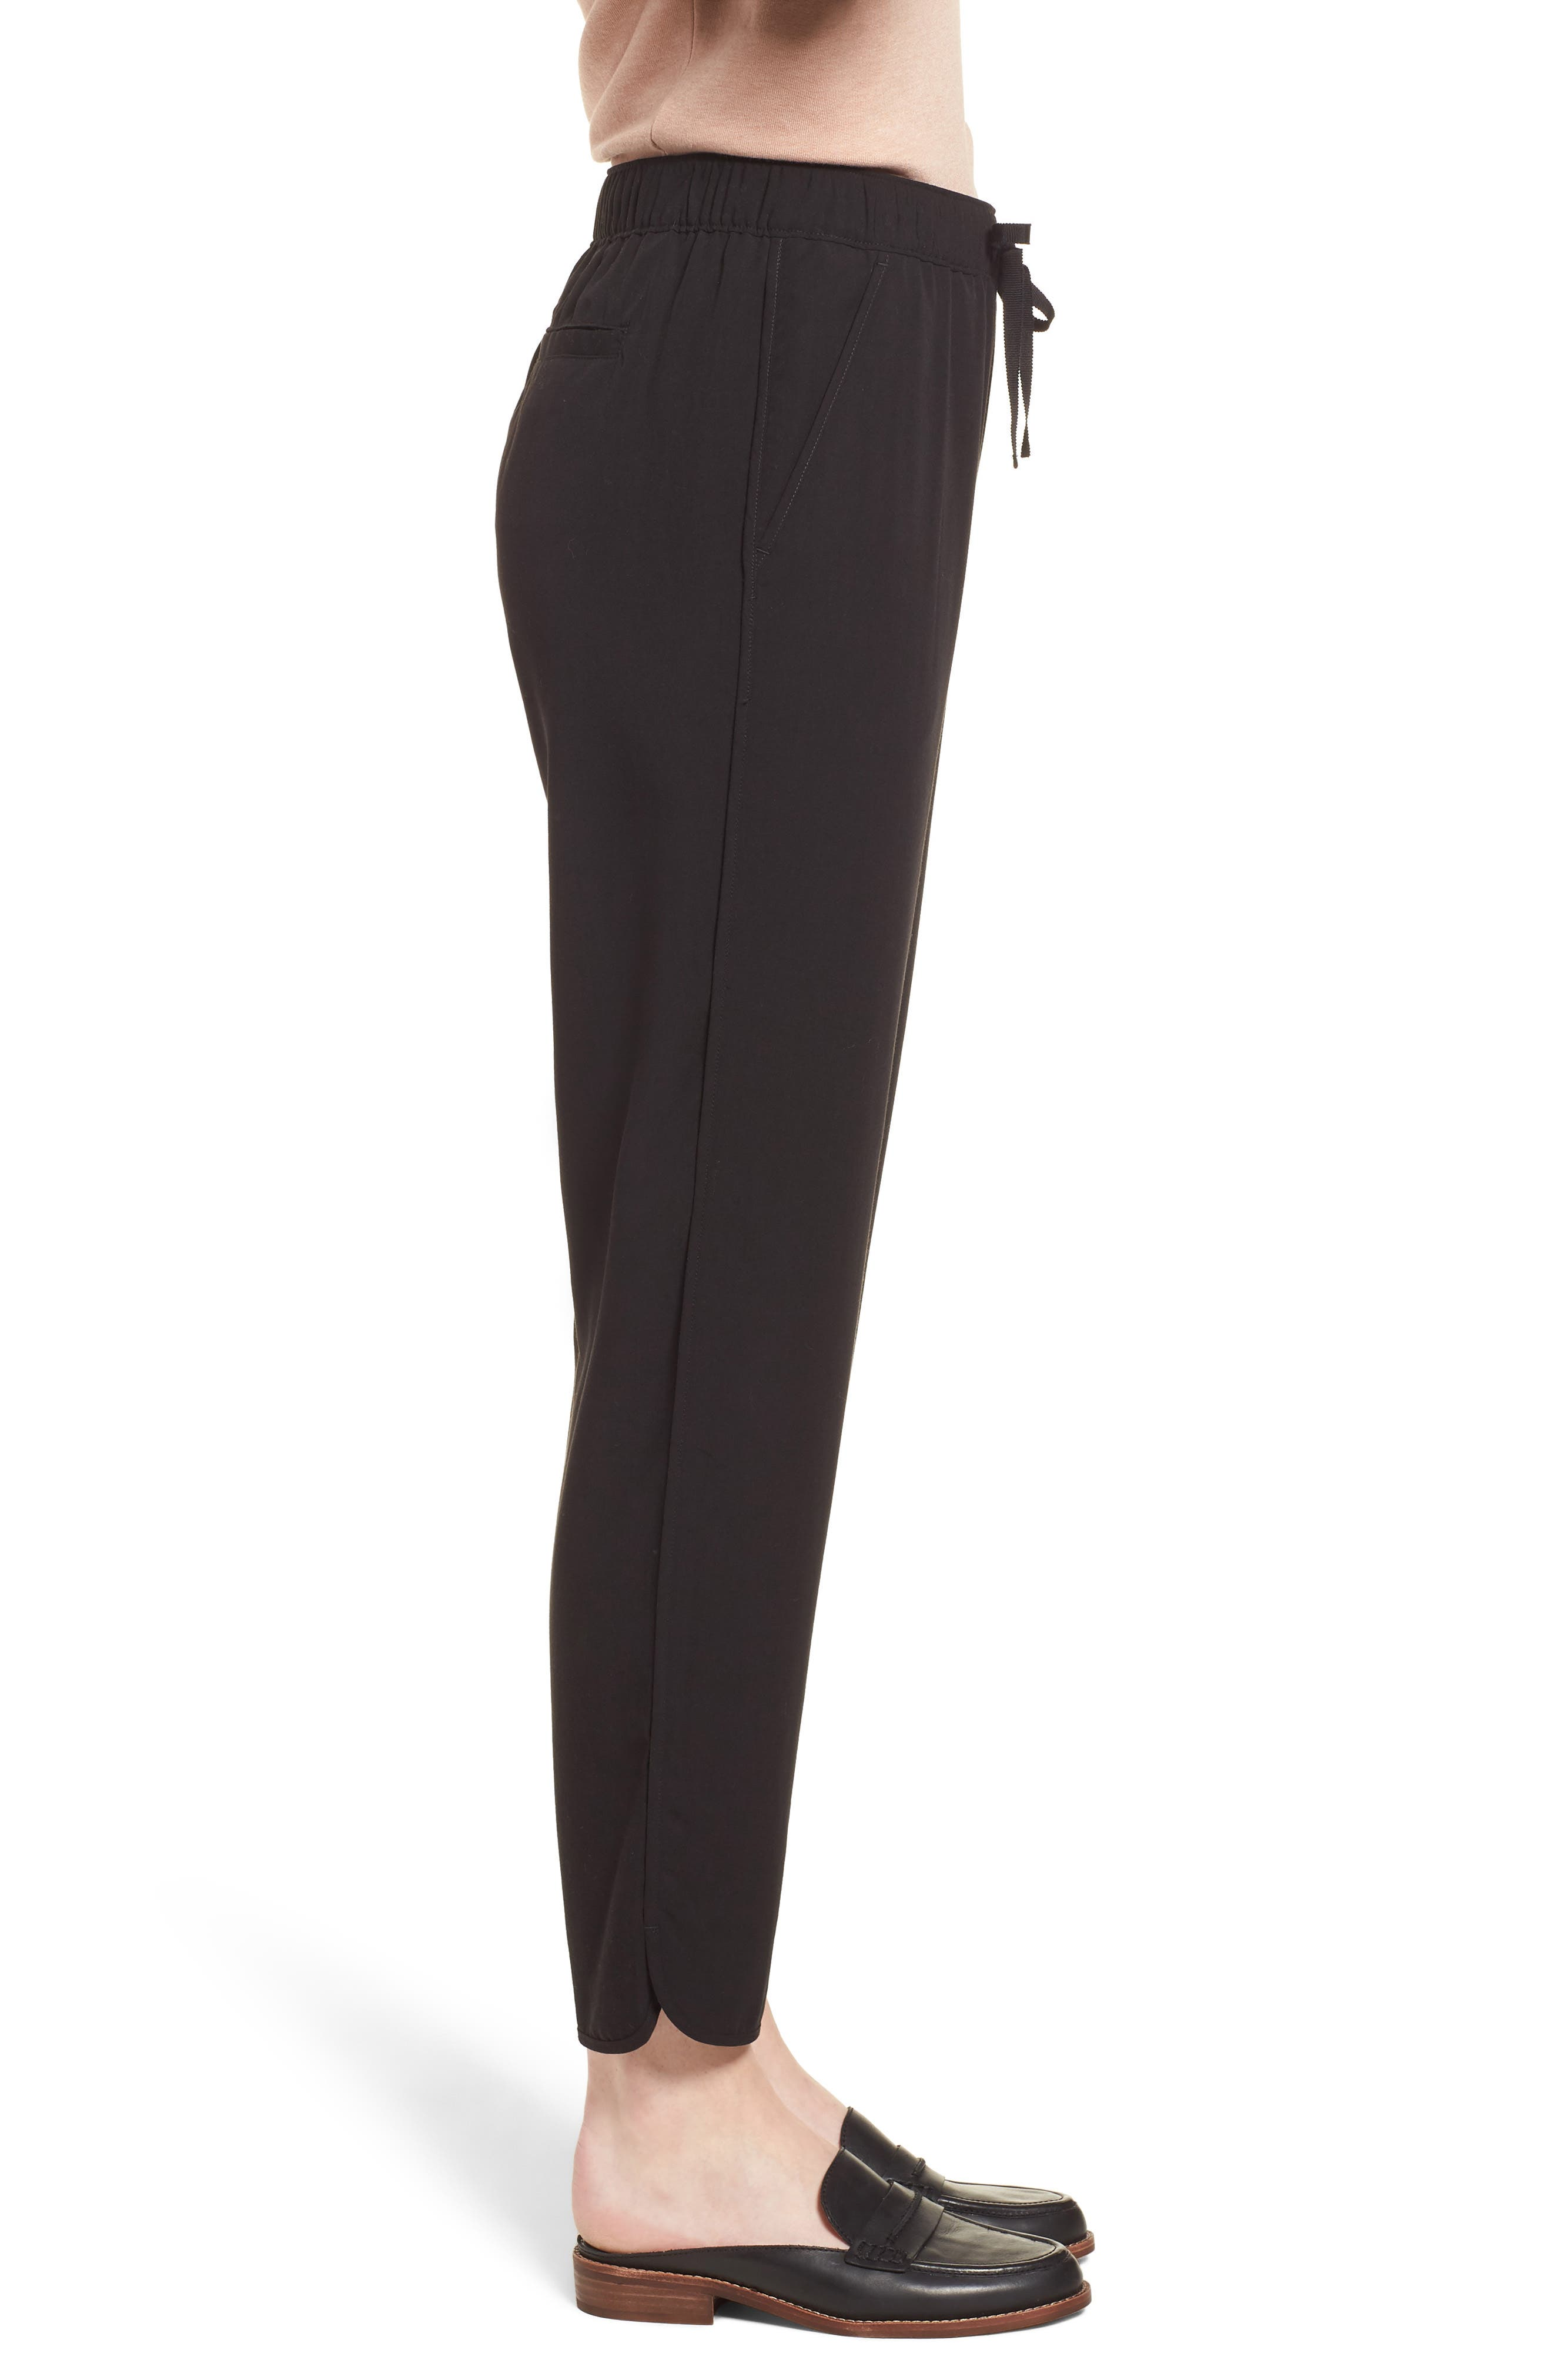 MADEWELL,                             Drawstring Track Trousers,                             Alternate thumbnail 3, color,                             001